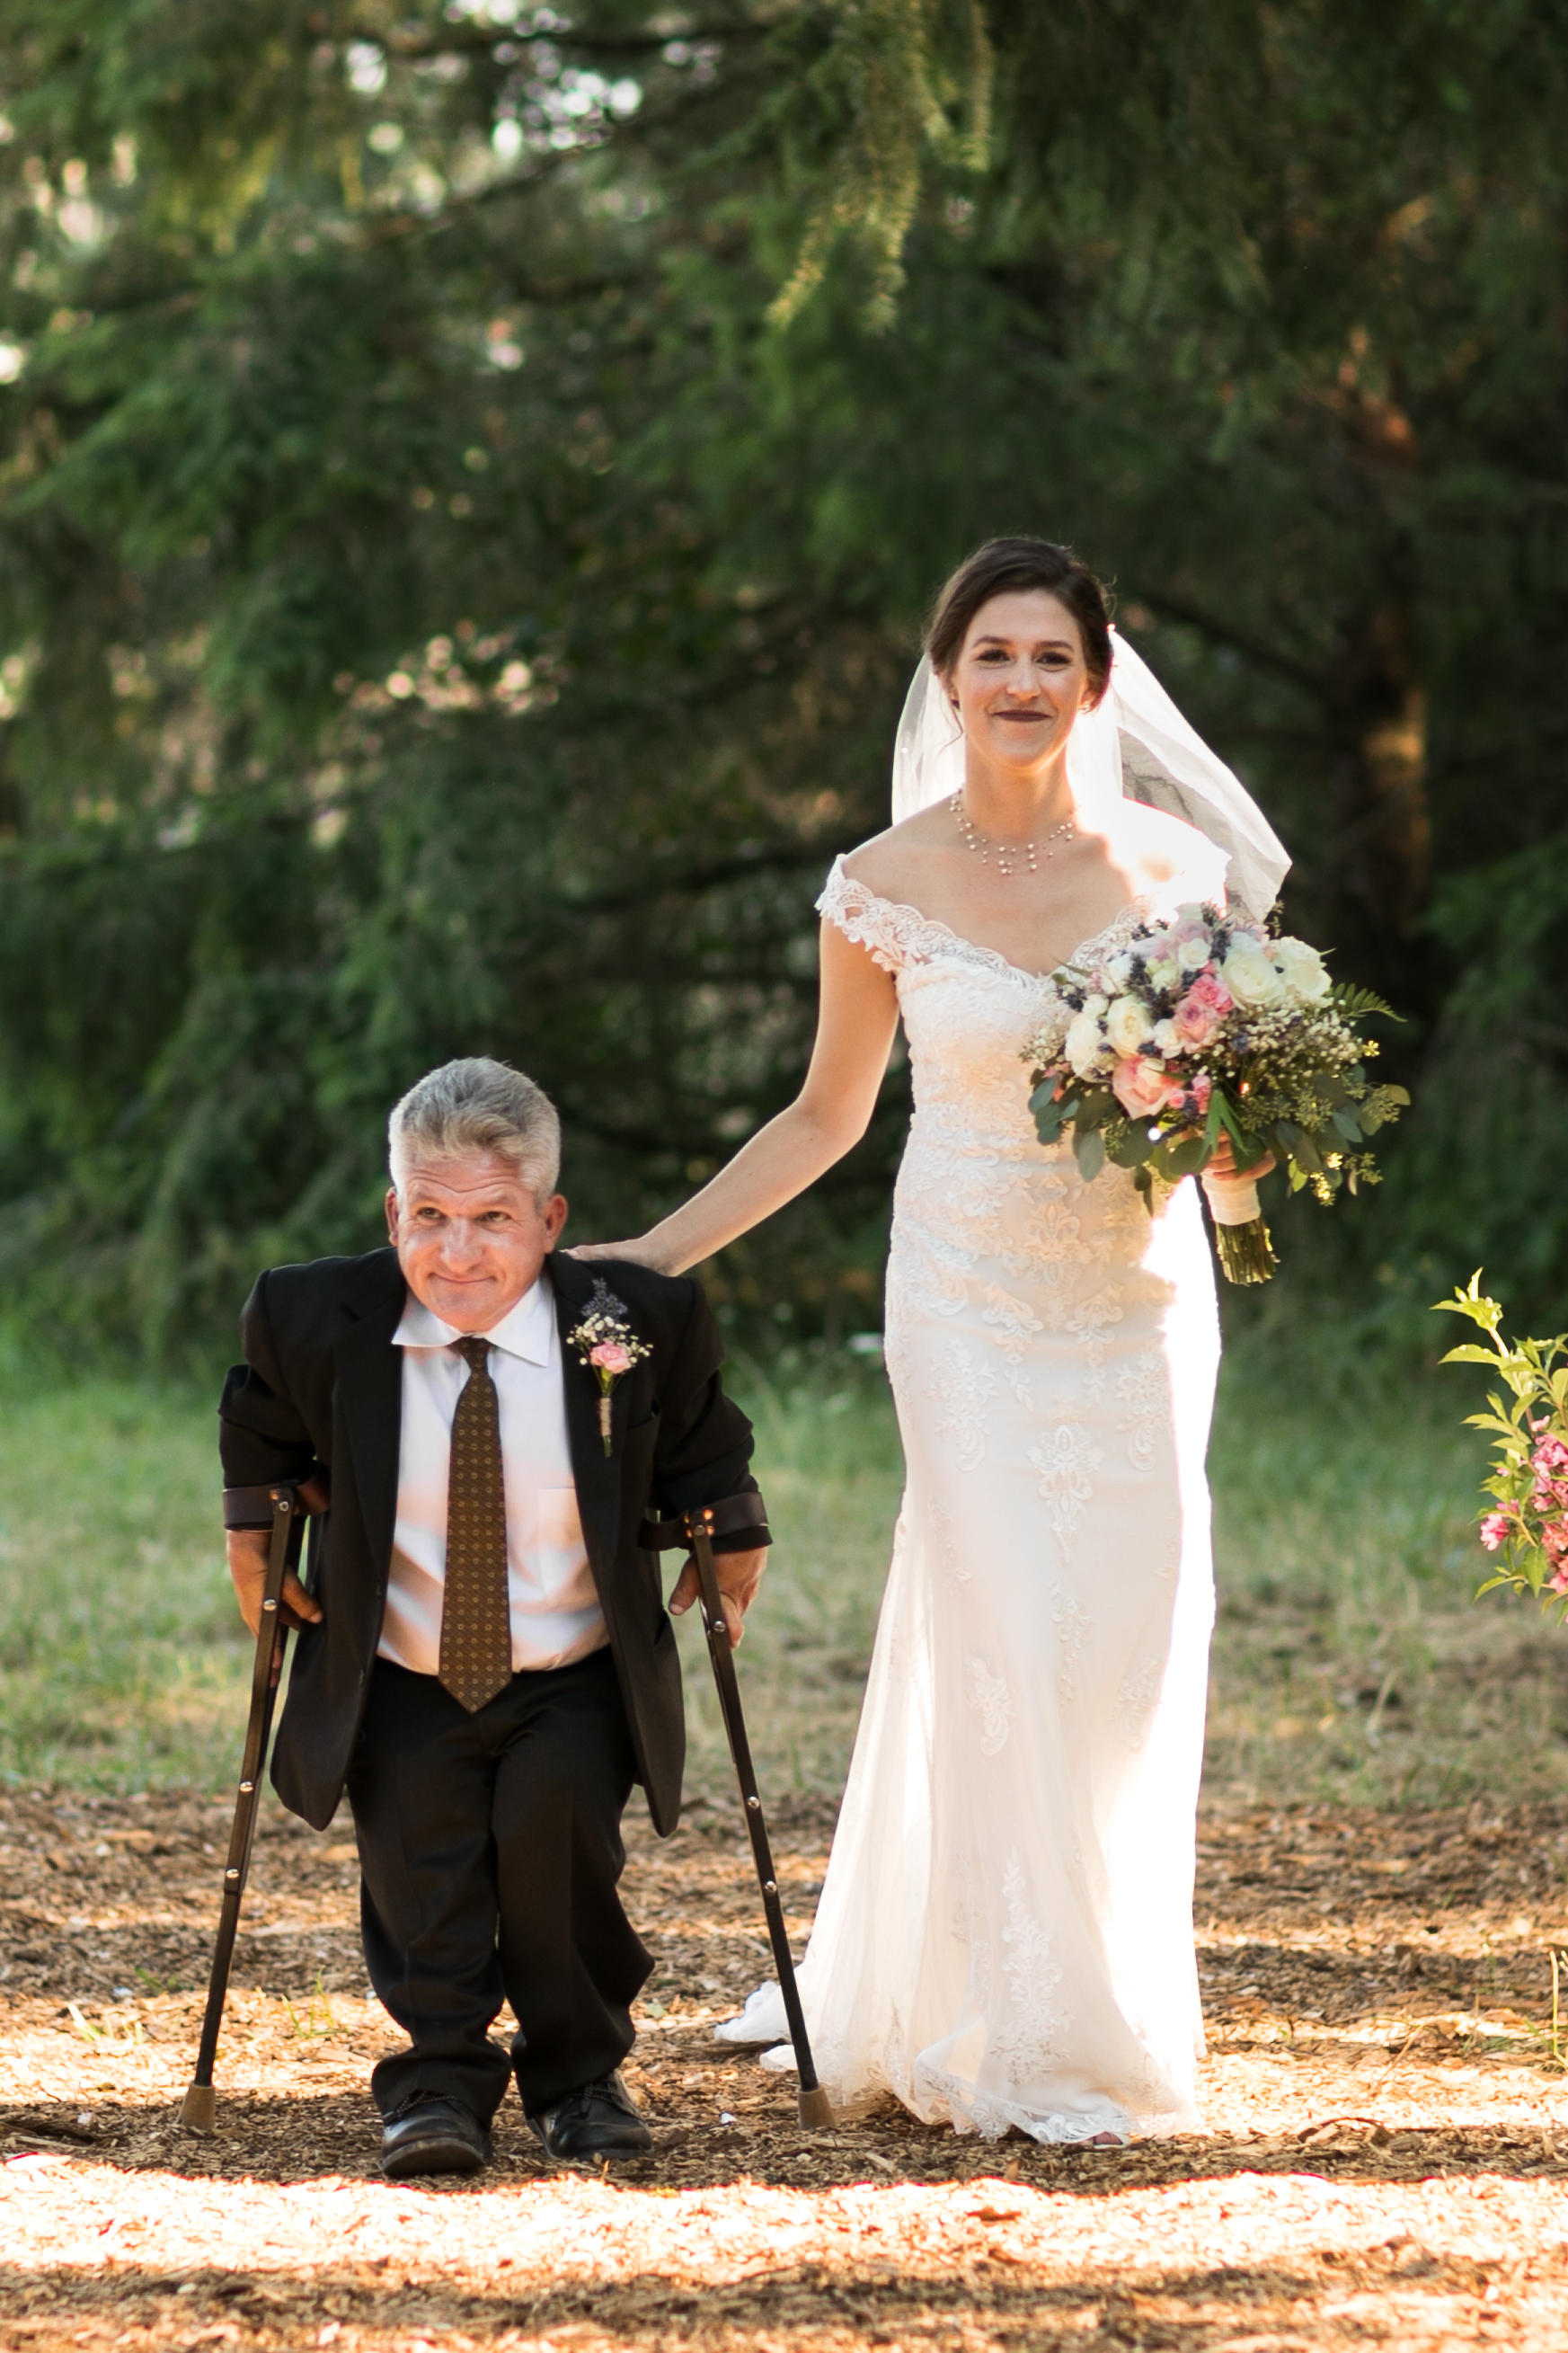 All the details from molly roloffs intimate wedding at roloff farms matt walking molly down the aisle junglespirit Choice Image